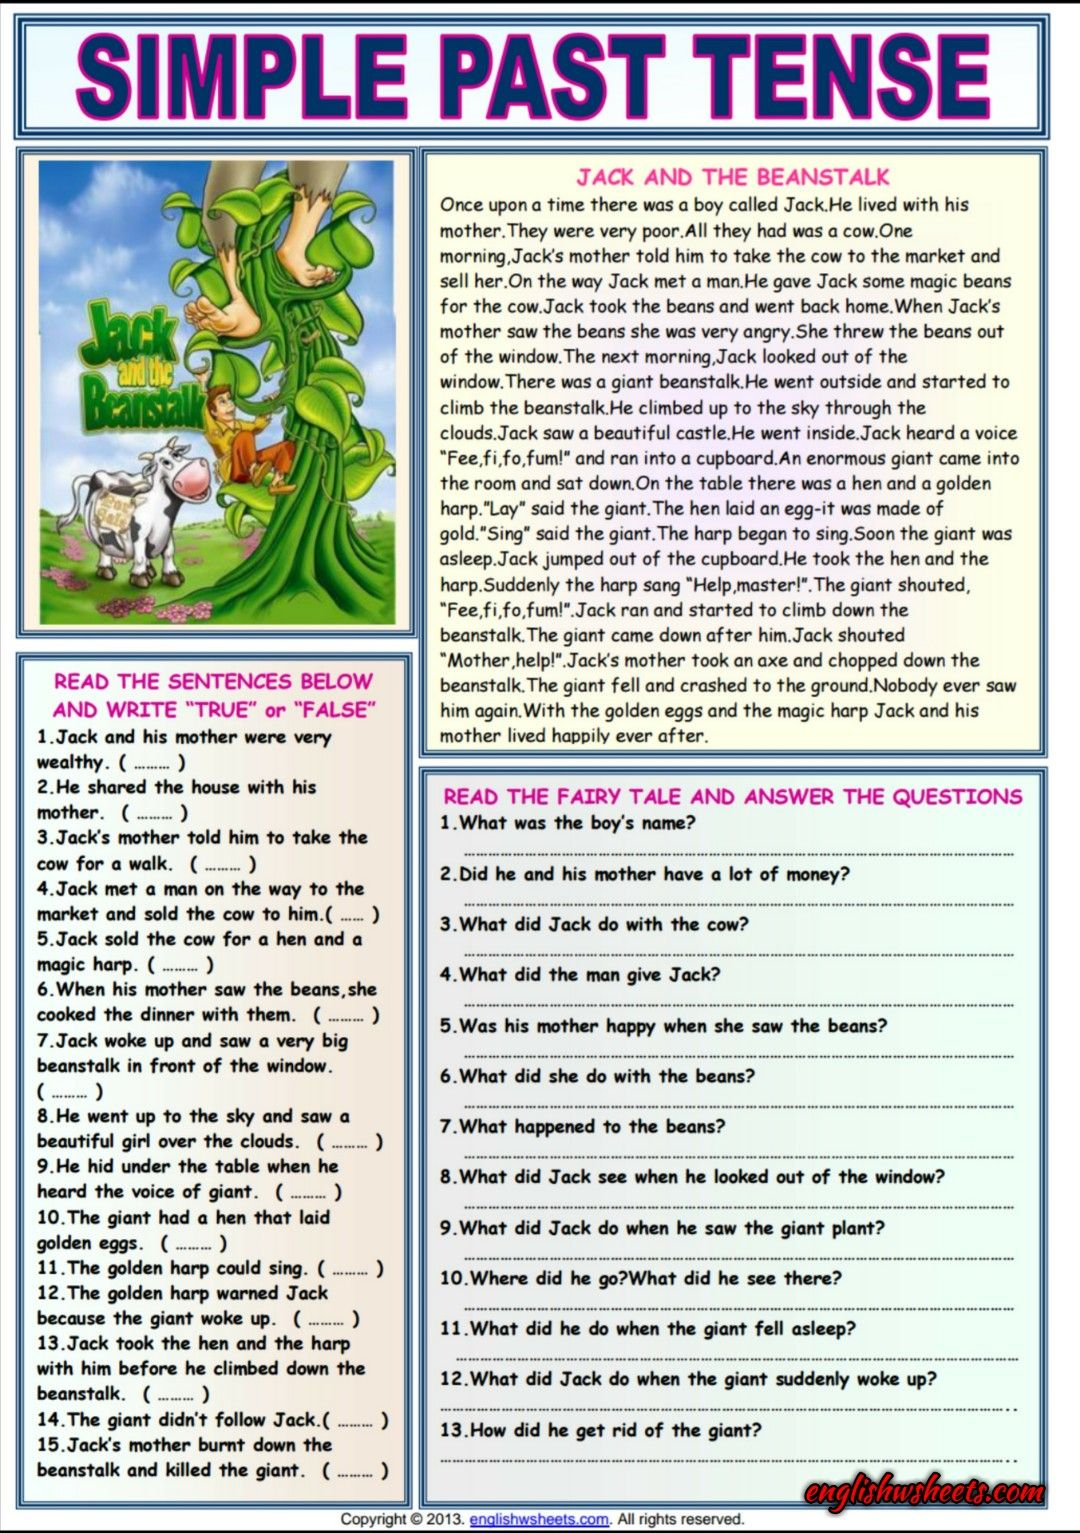 Jack And The Beanstalk Comprehension Esl Worksheet Simple Past Tense Past Tense Past Tense Worksheet